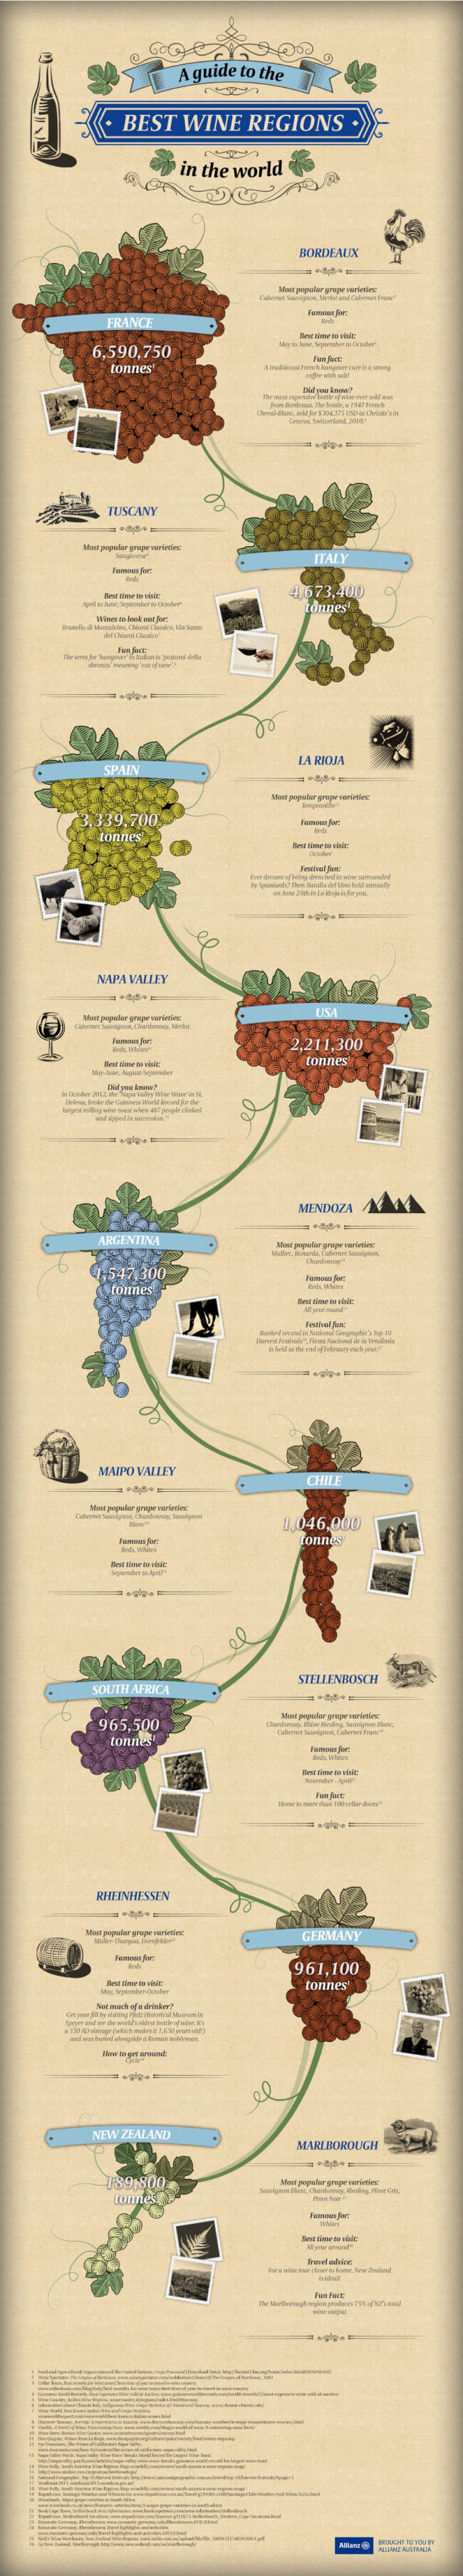 a-guide-to-the-best-wine-regions-in-the-world-tips-tipsographic-main